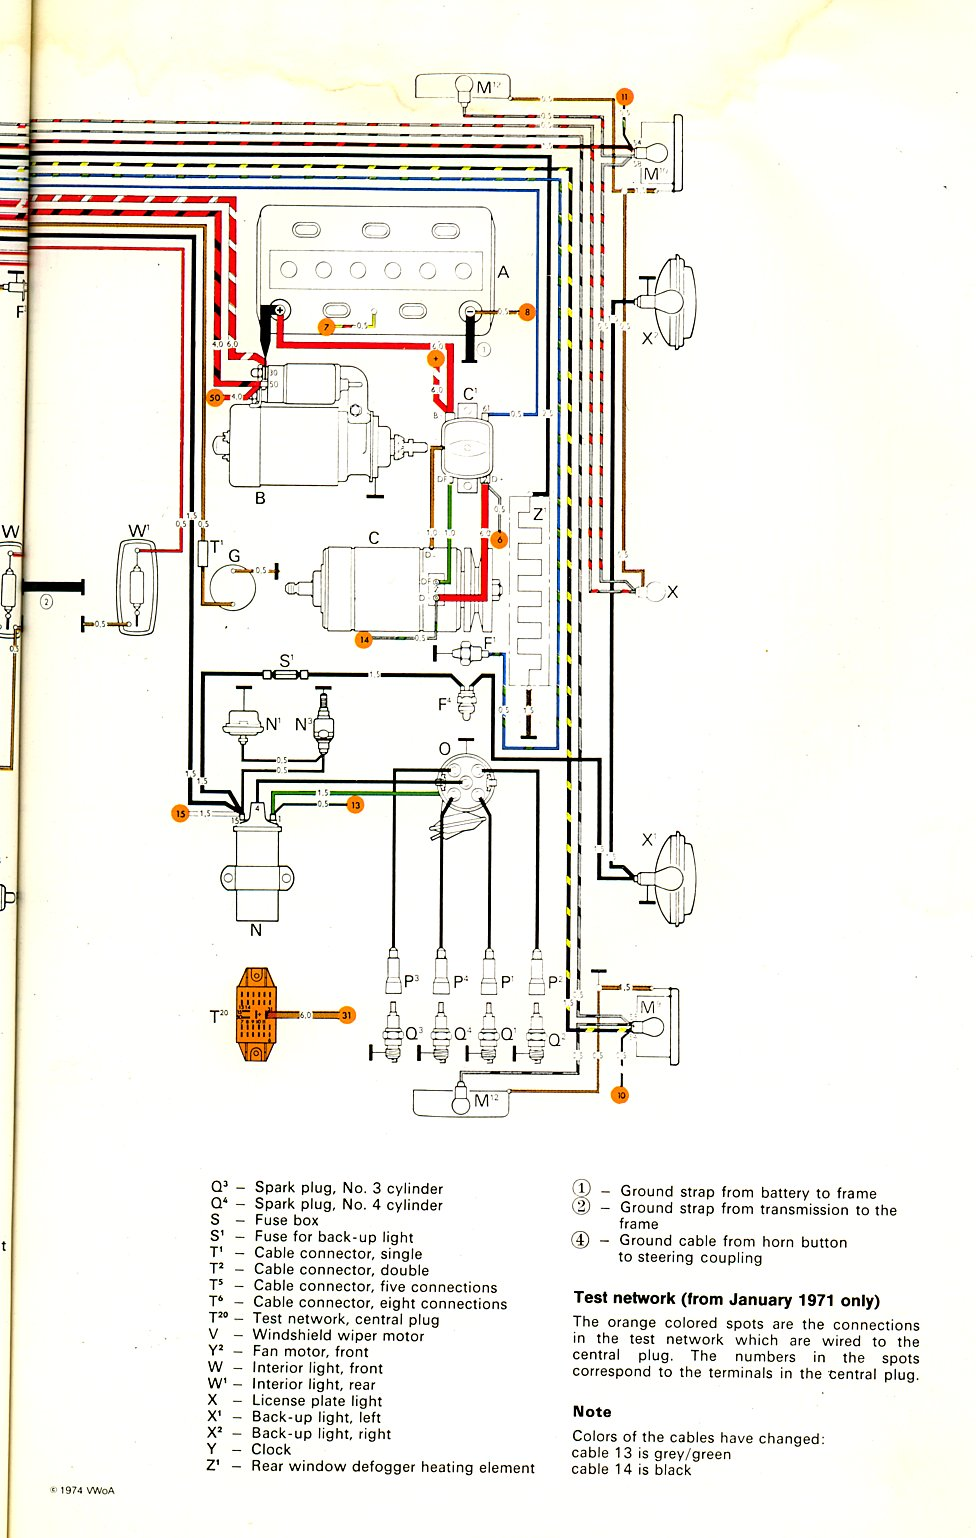 baybus_71b thesamba com type 2 wiring diagrams Dodge Ram Wiring Diagram at mifinder.co